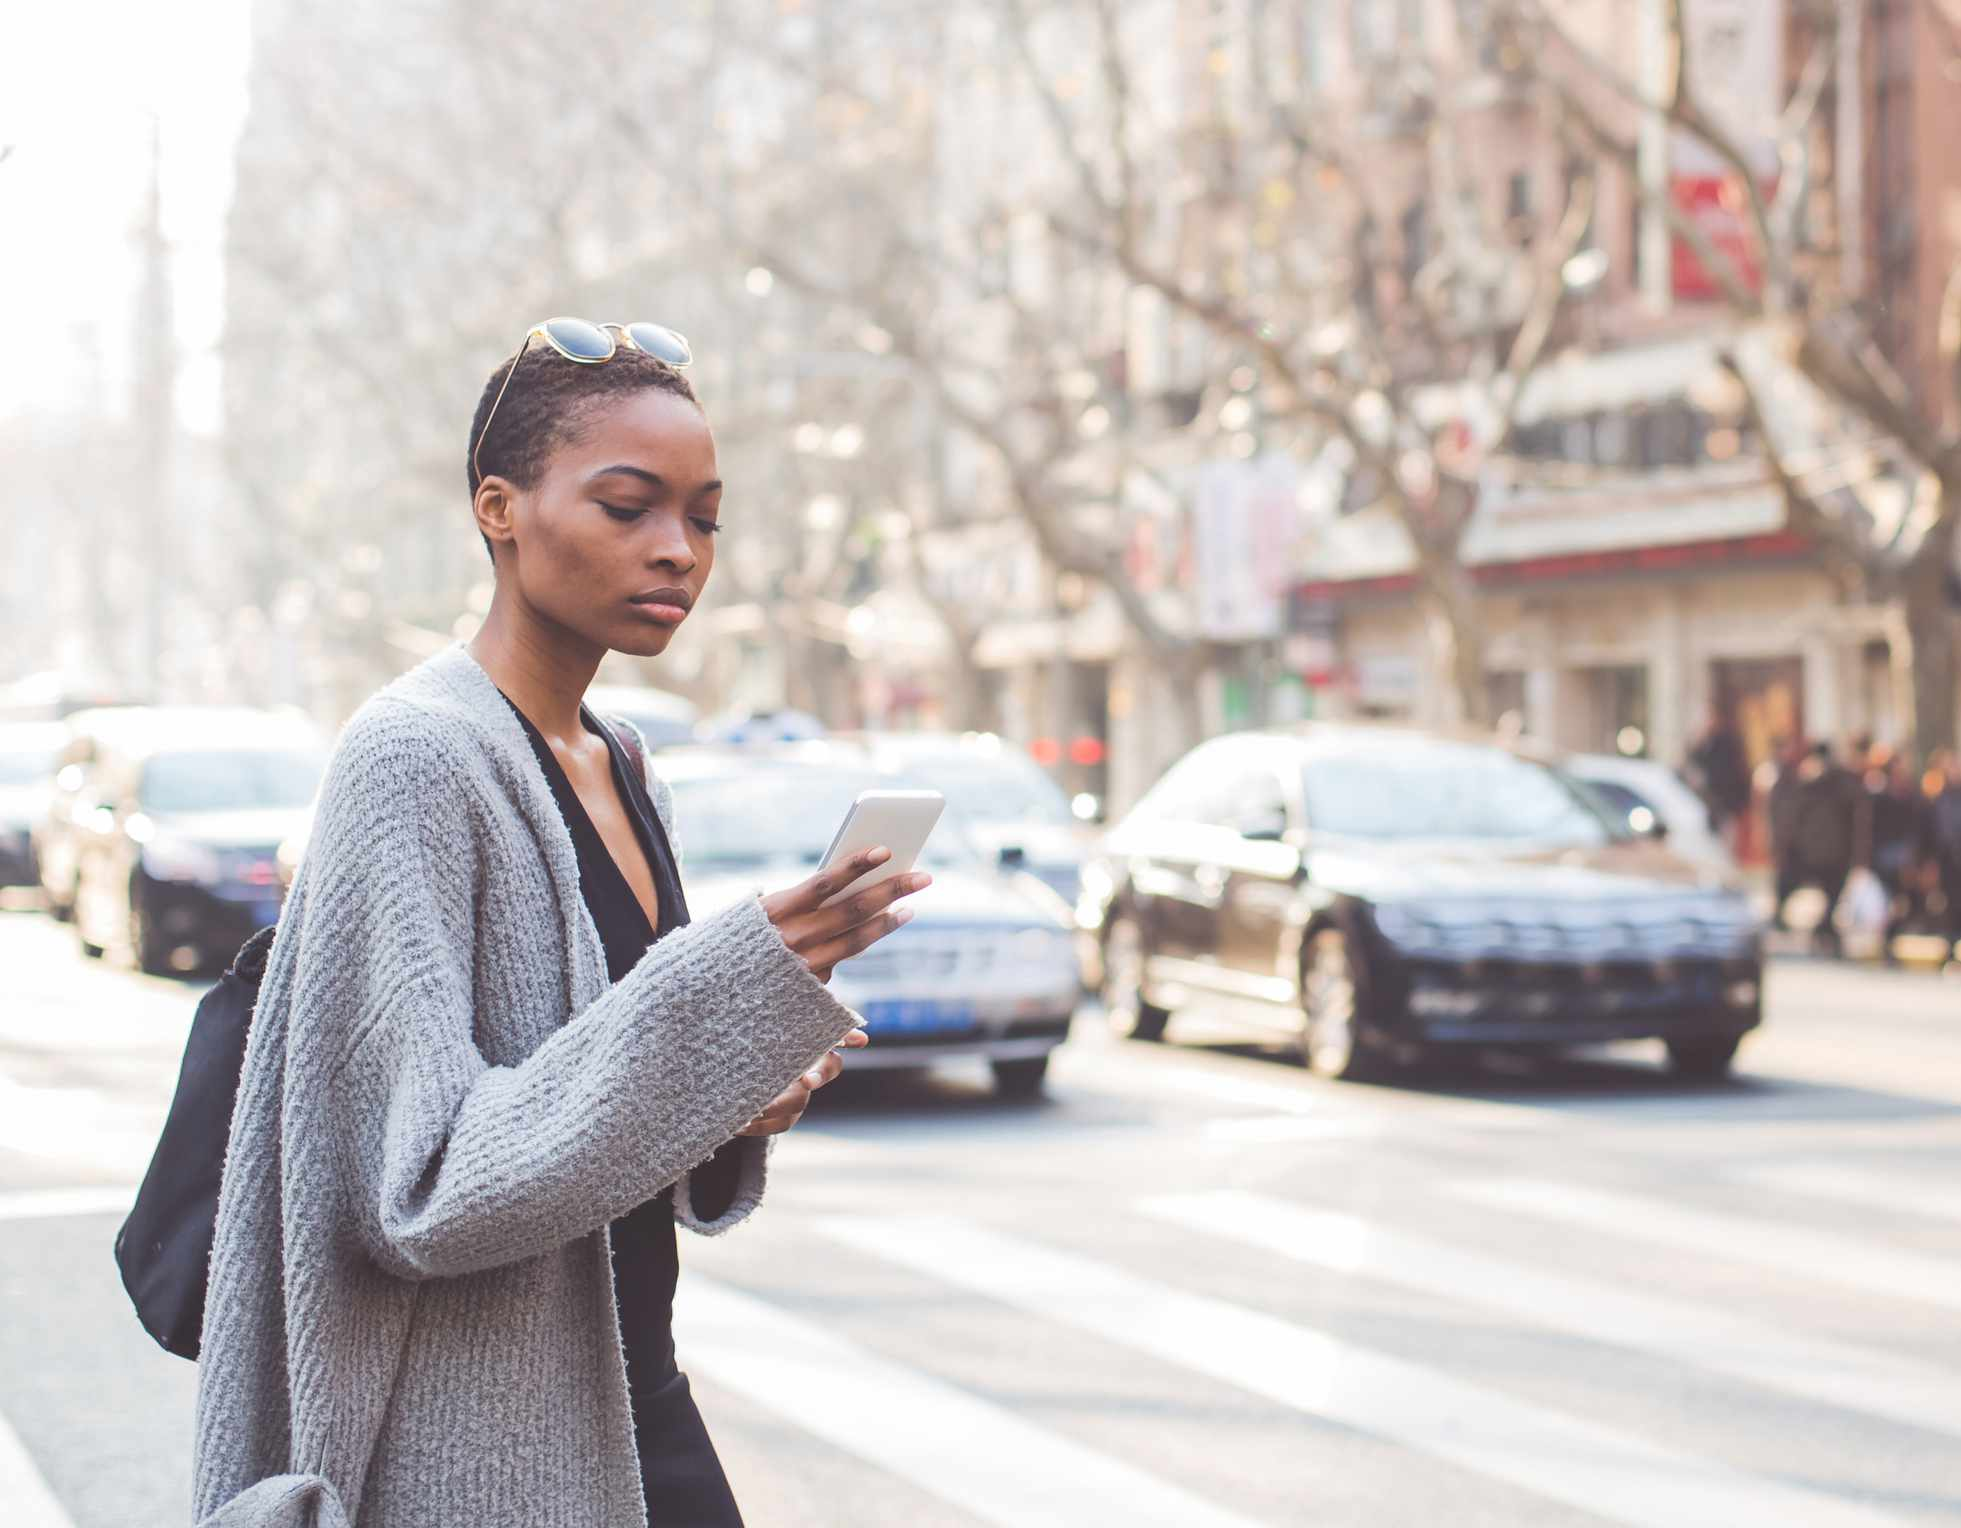 A young Black woman crosses the road looking at her phone.